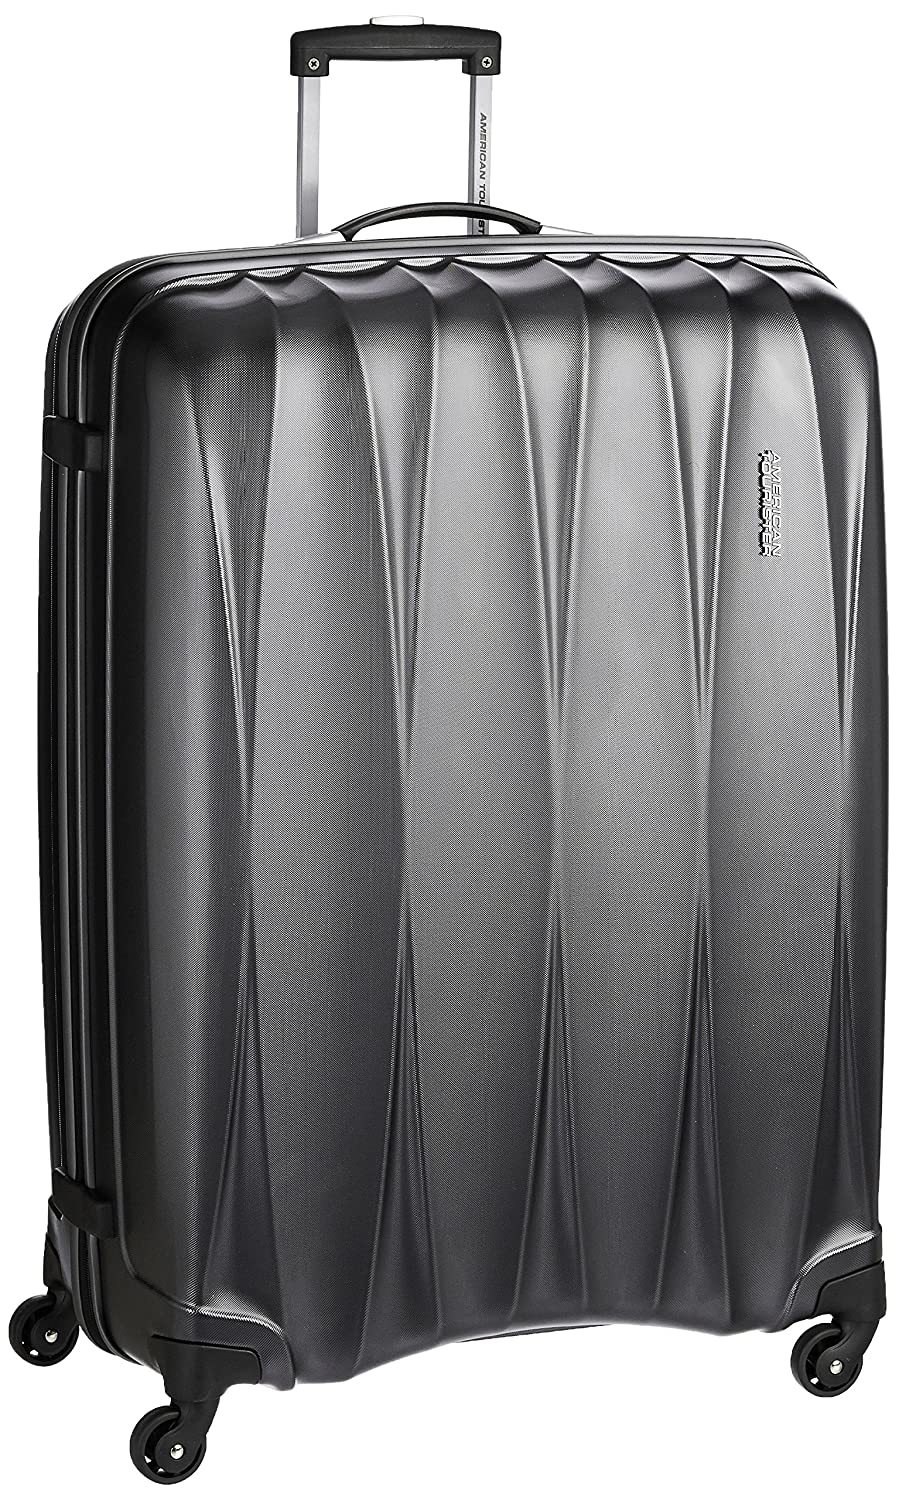 American Tourister Luggage, Backpacks low price